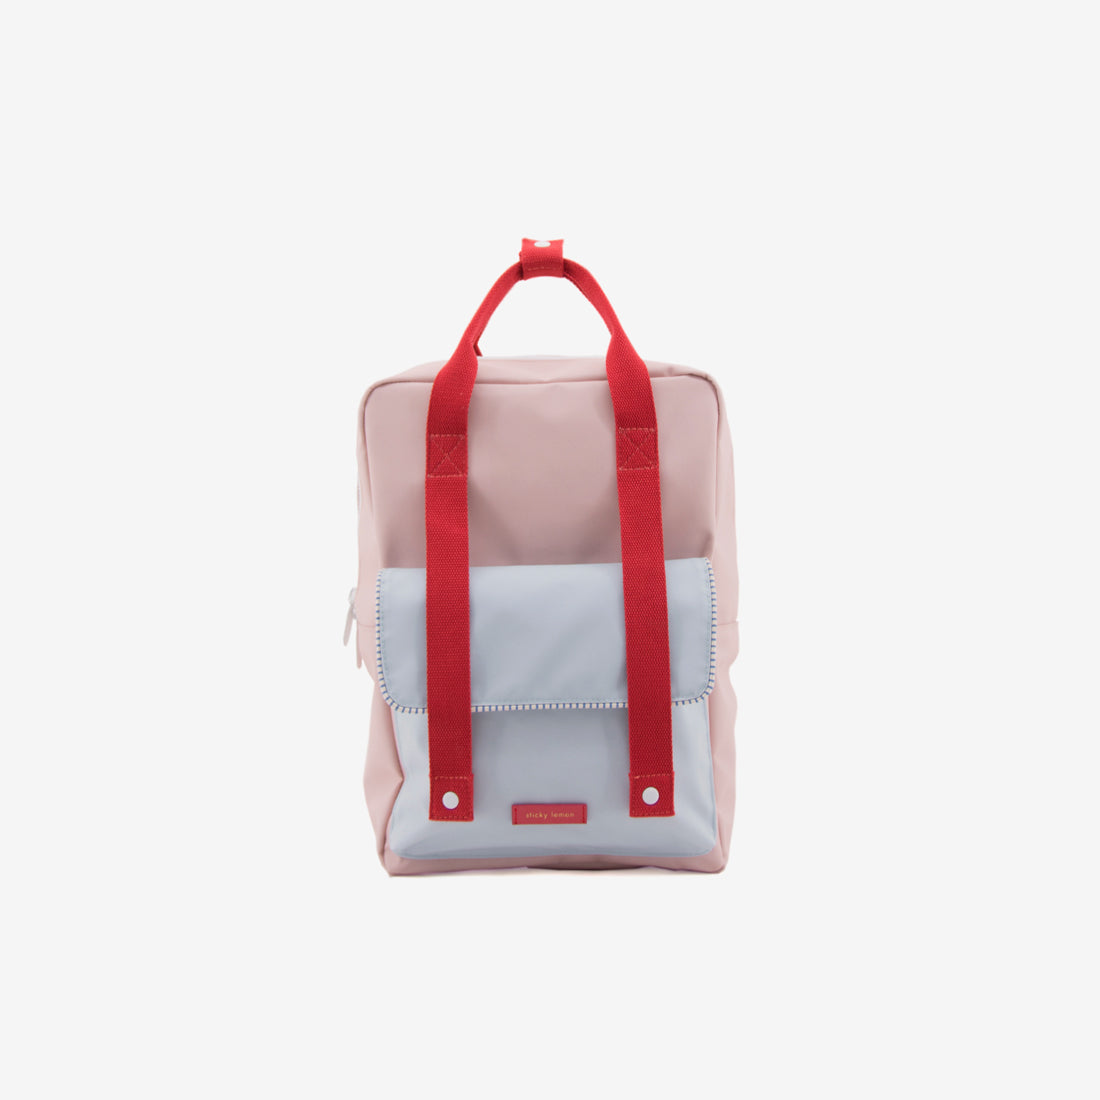 Backpack/Diaper Bag - Pink Envelope Deluxe